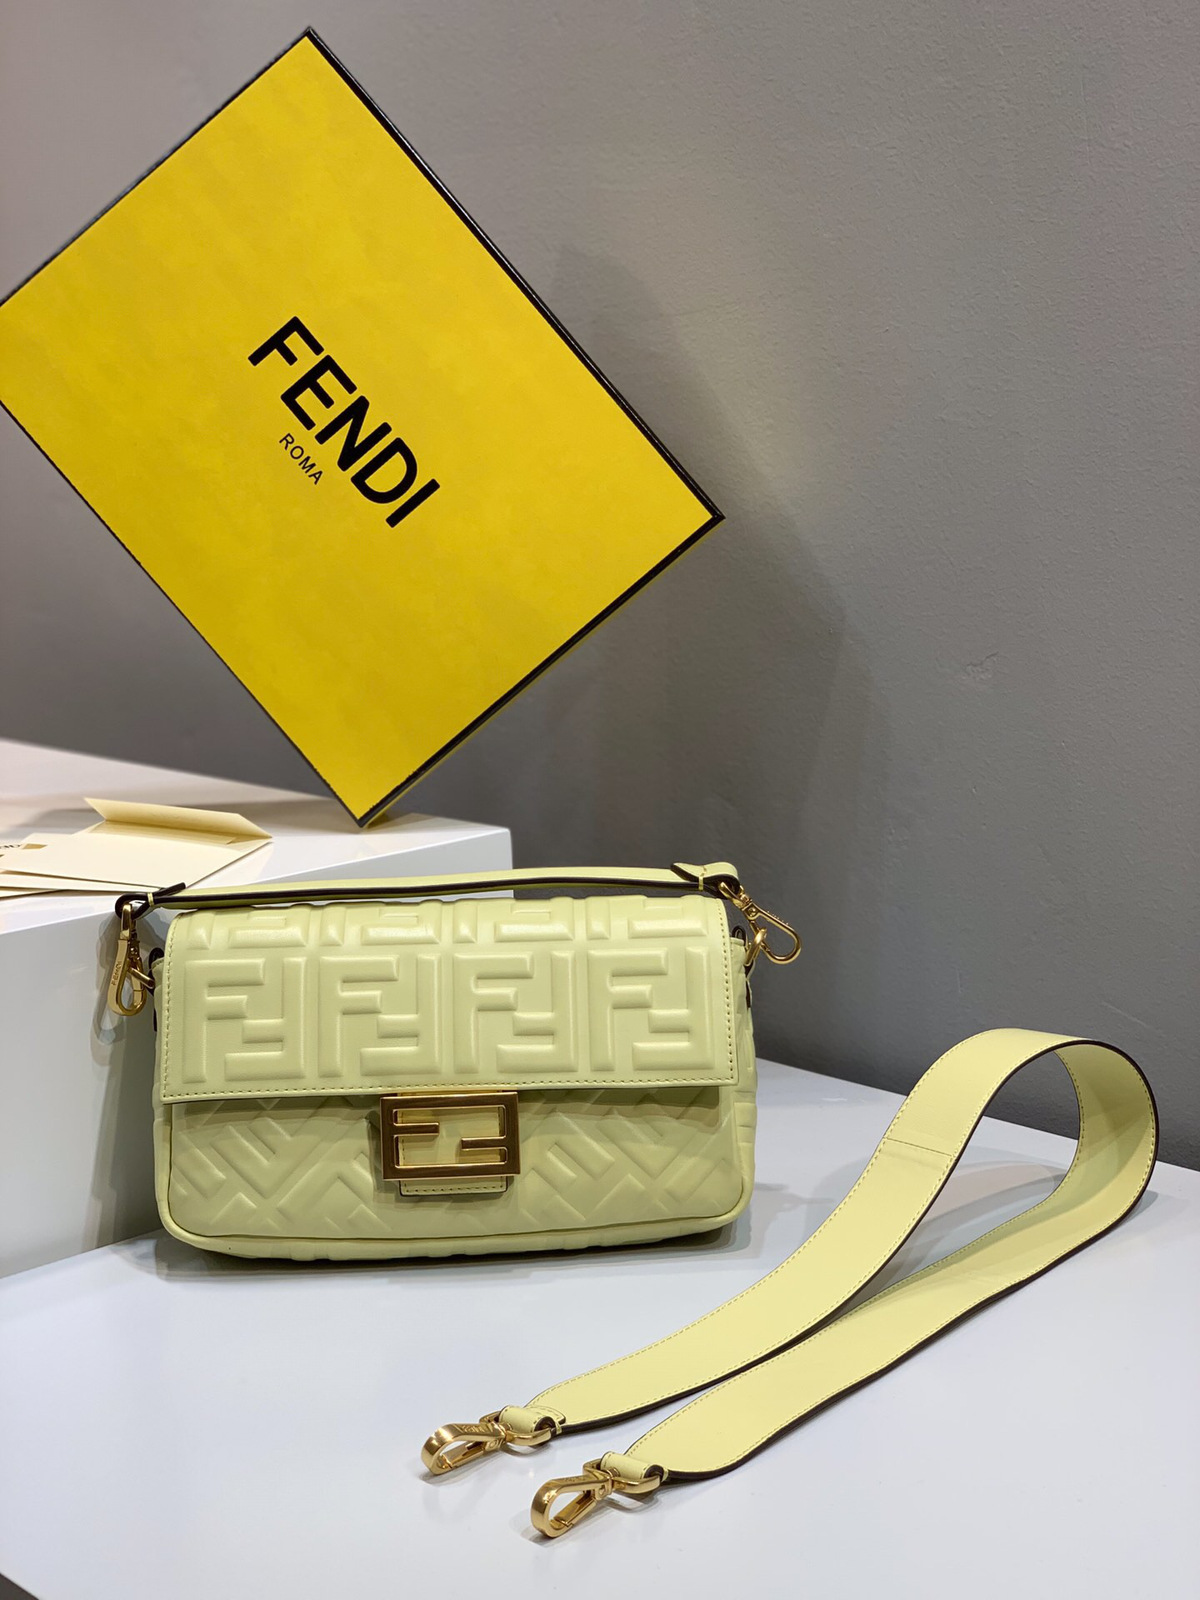 2019 Fendi bag BAGUETTE pale yellow